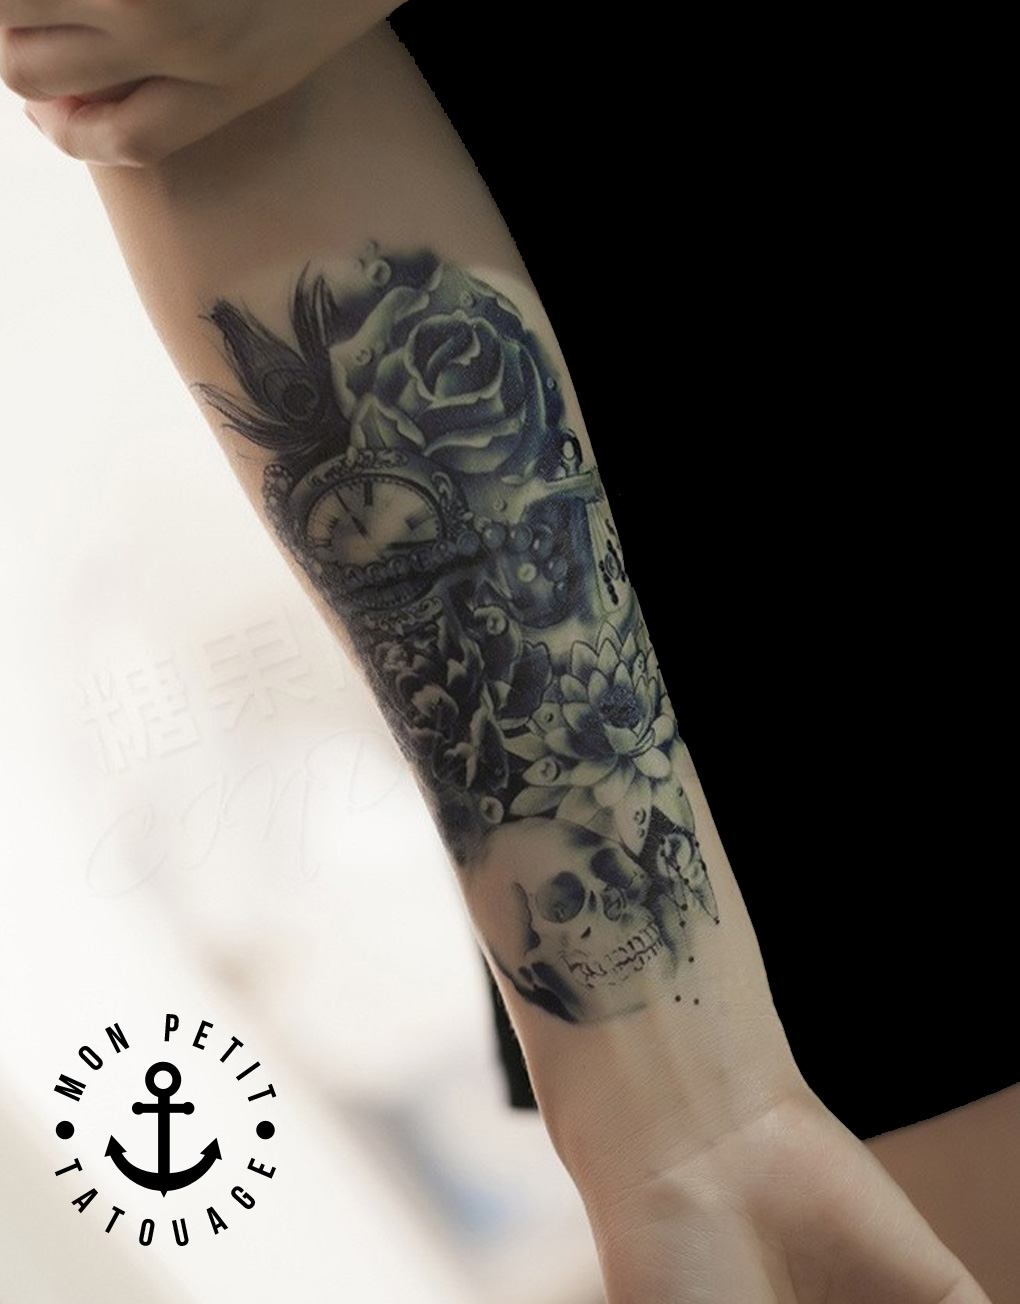 tatouage t te de mort ancre horloge rose composition r aliste mon petit tatouage temporaire. Black Bedroom Furniture Sets. Home Design Ideas